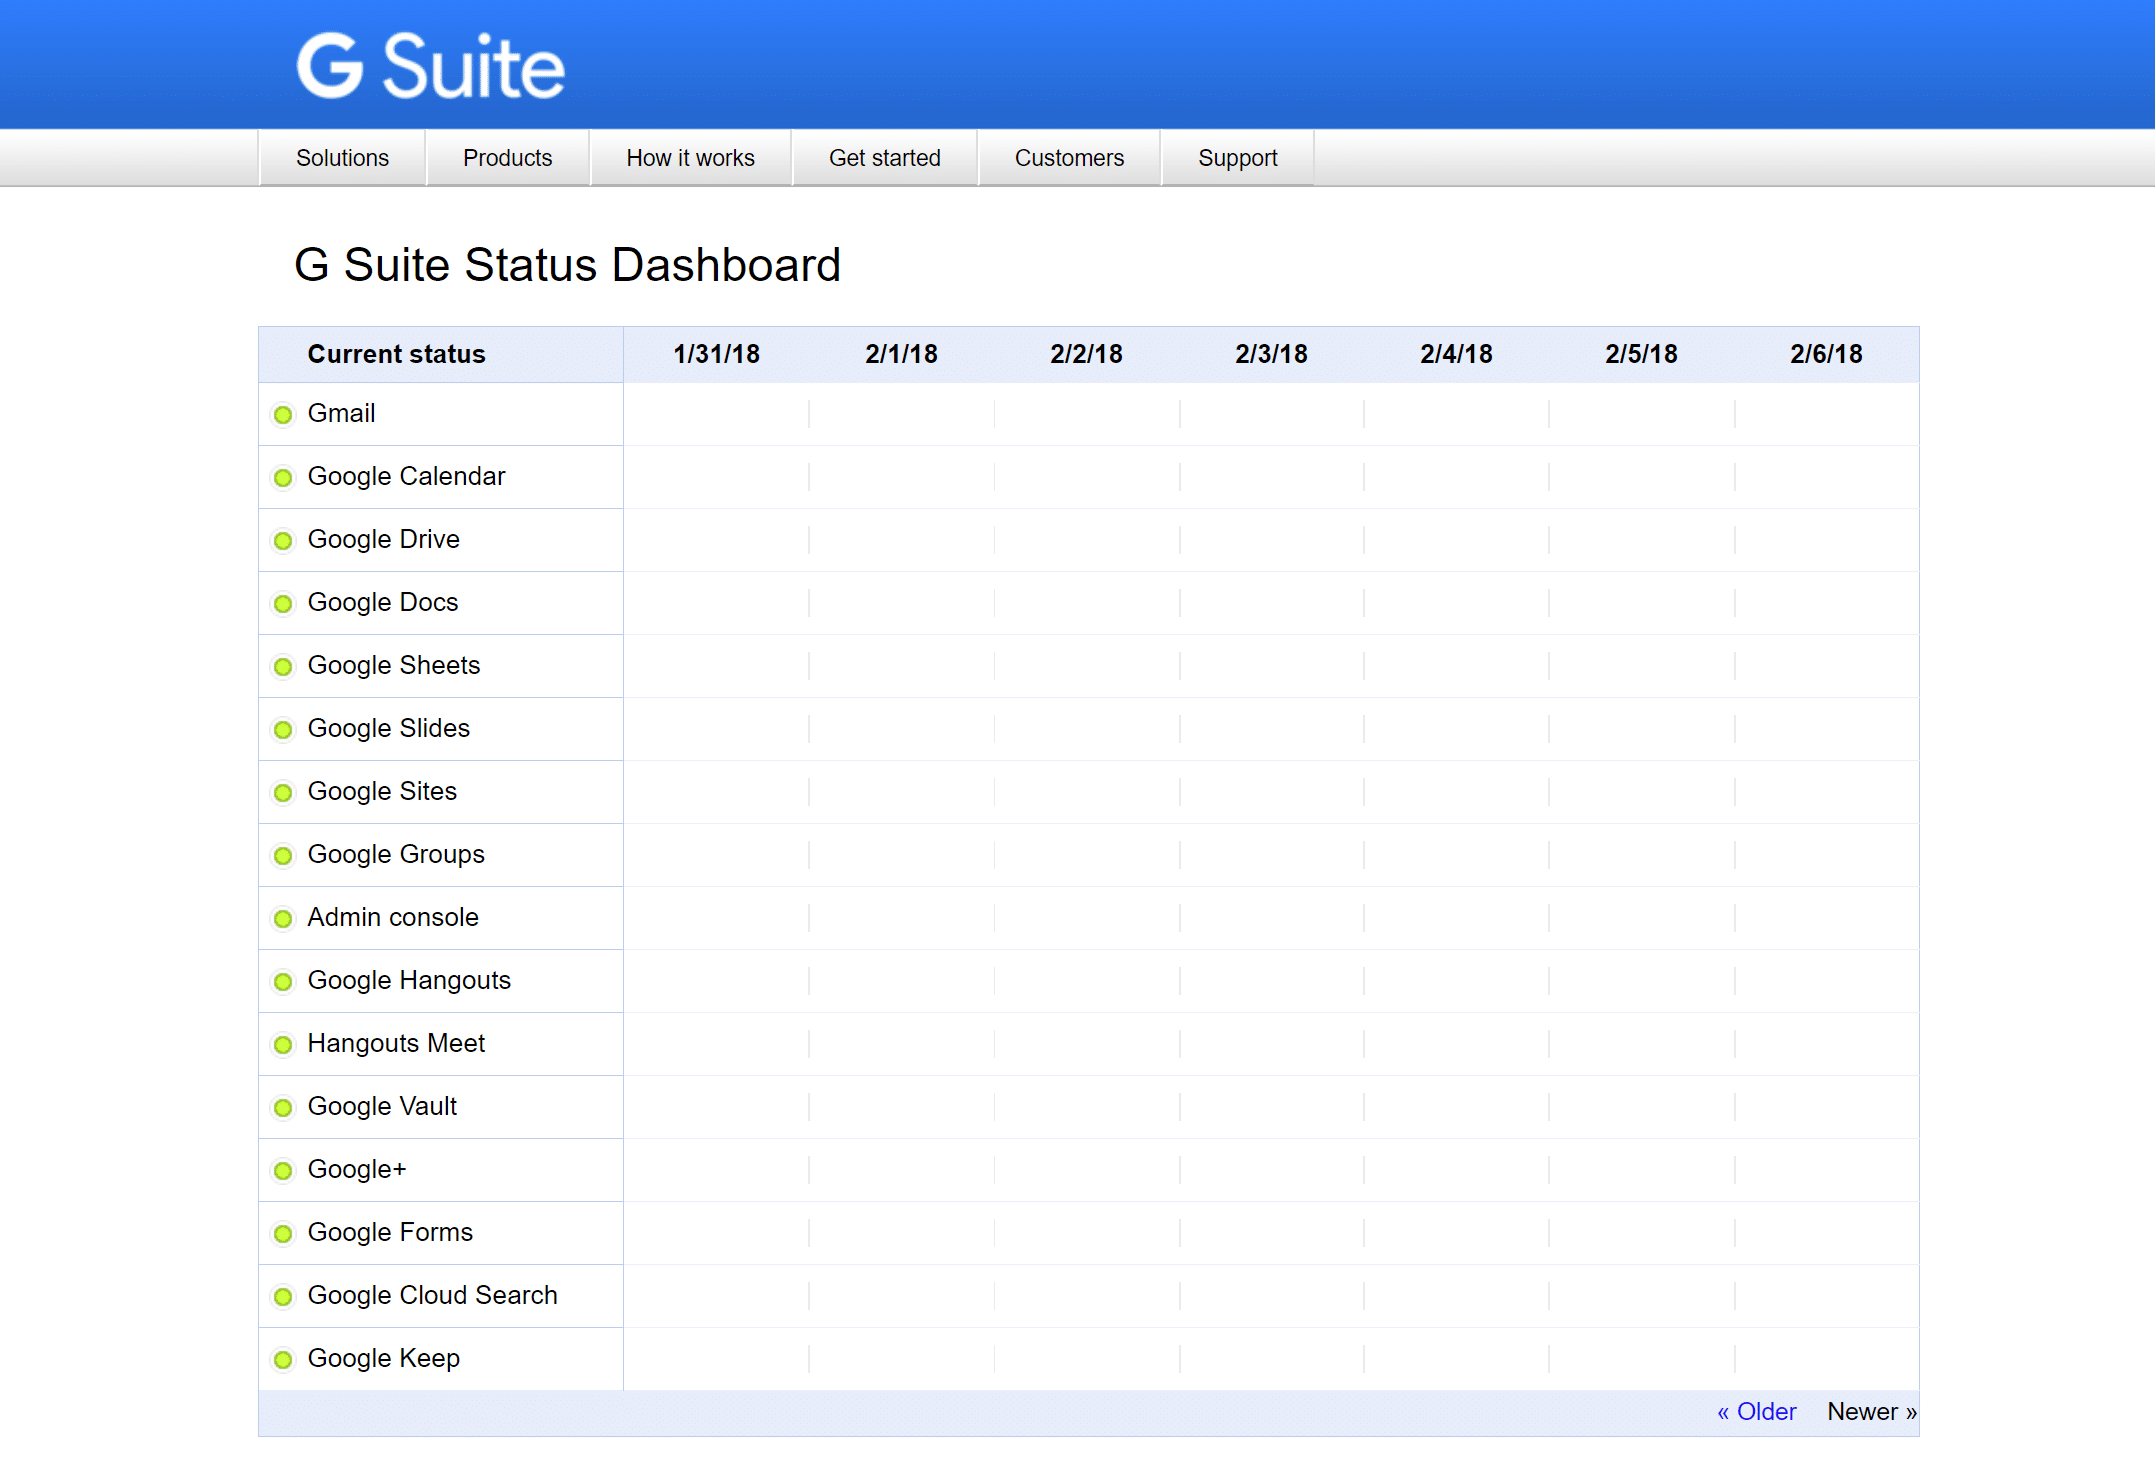 G Suite status dashboard